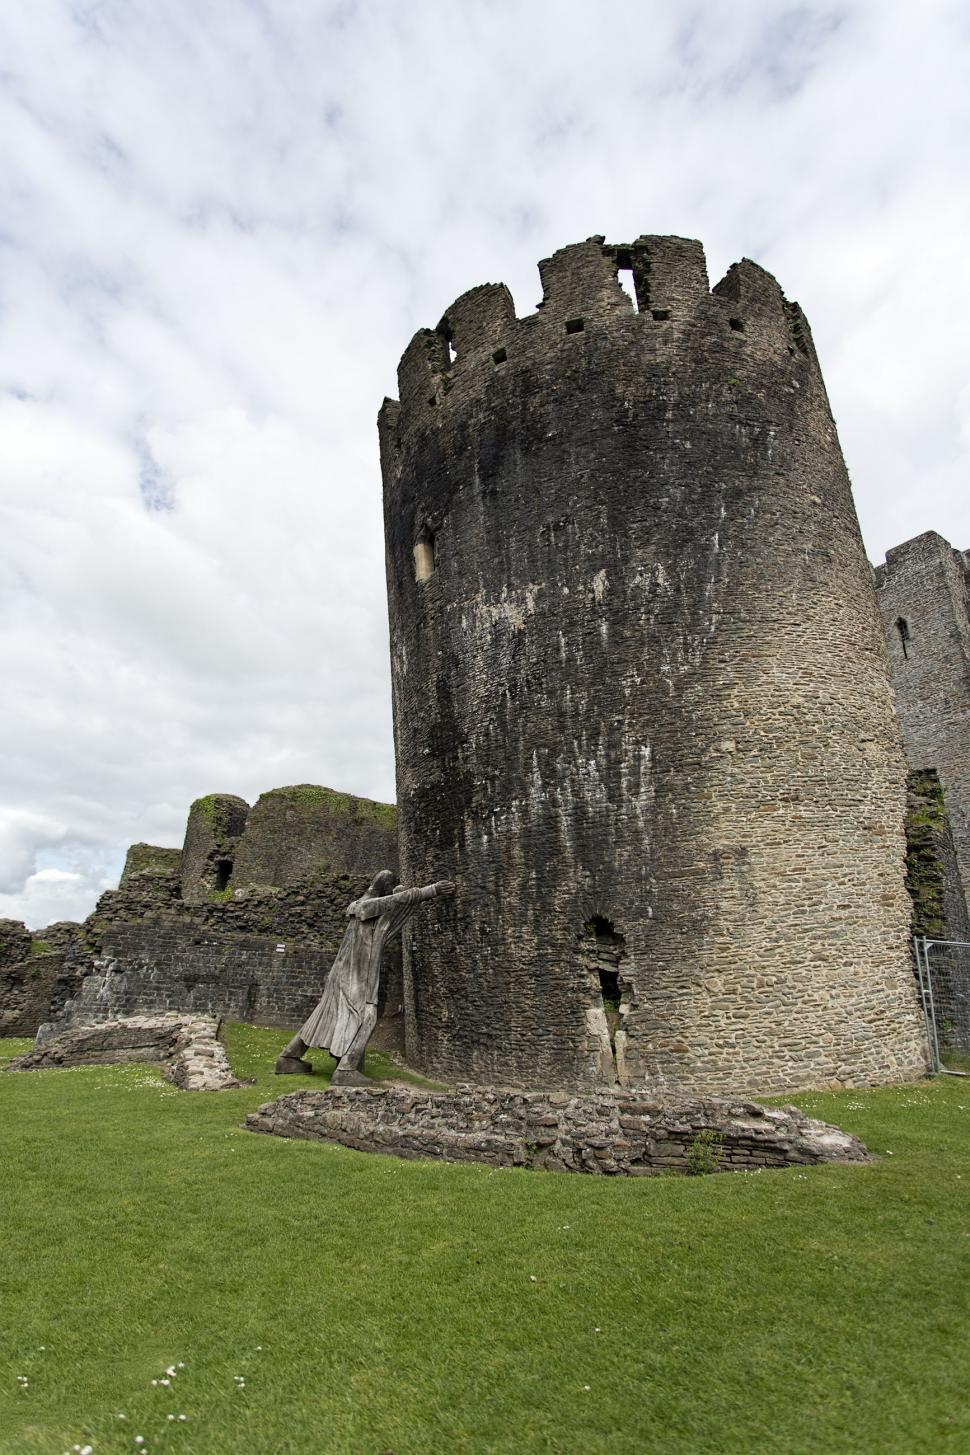 Download Free Stock HD Photo of Knight keeping up tower at Caerphilly castle Online